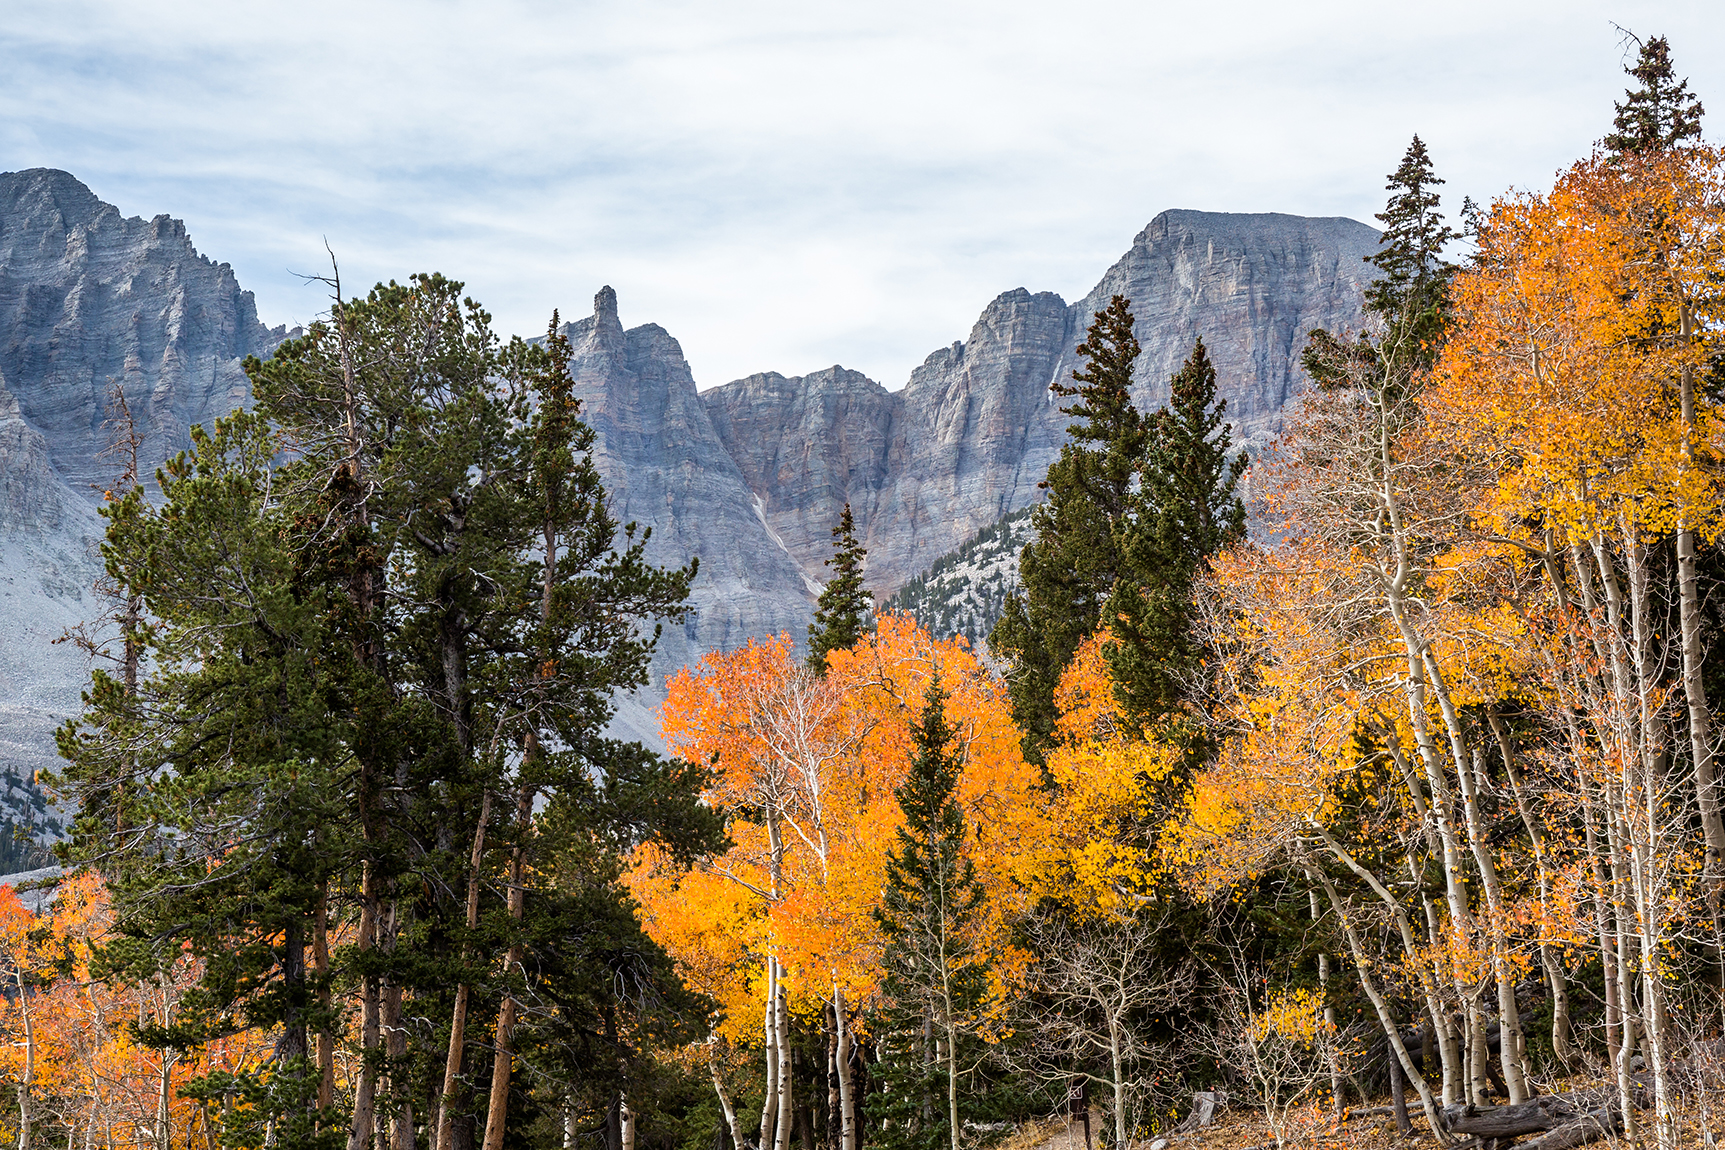 Thirteen-thousand-foot Wheeler Peak is visible over changing orange and yellow autumn leaves.